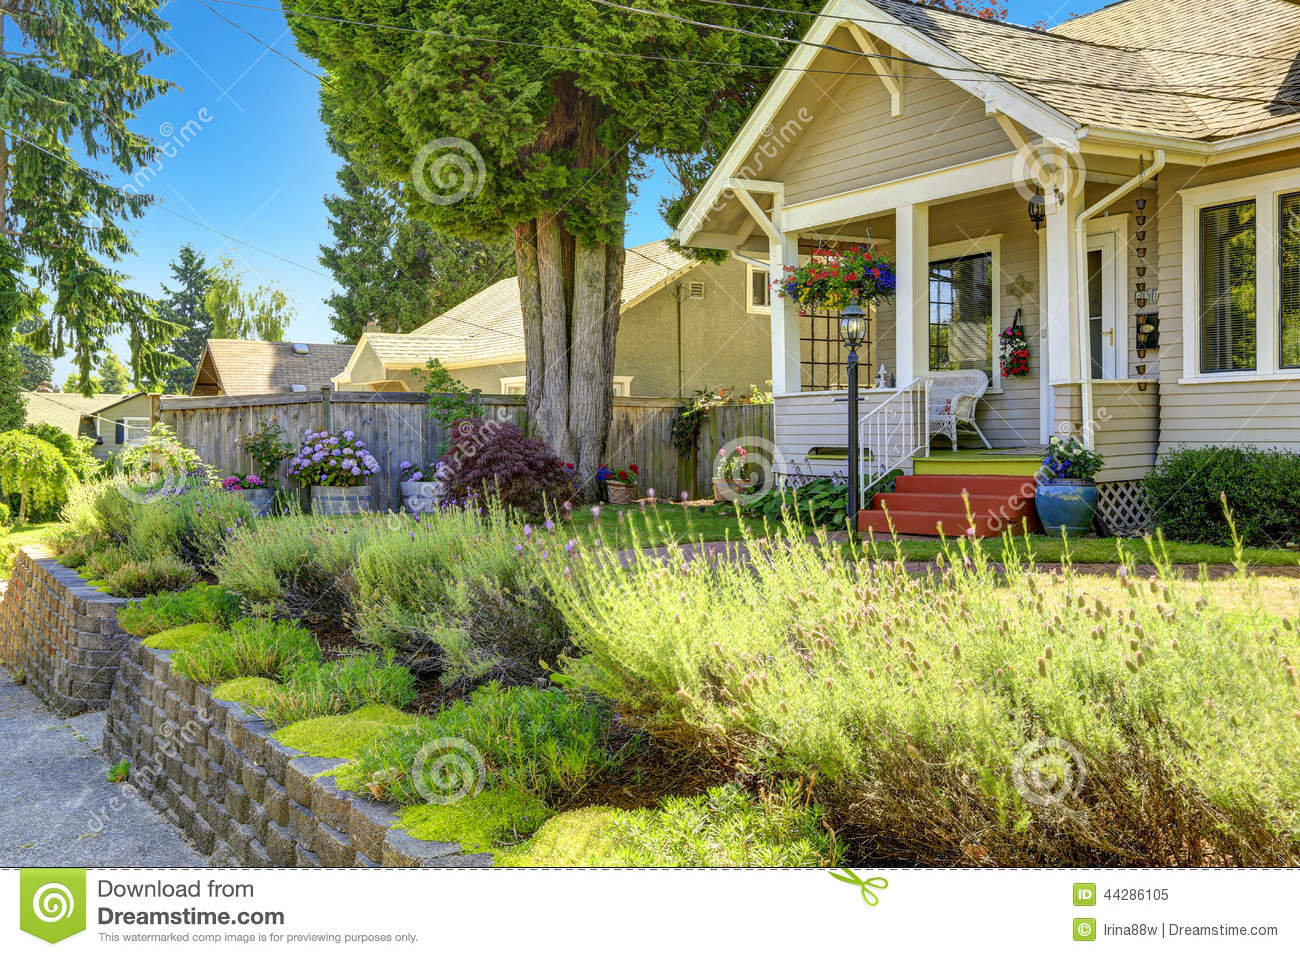 Classic american house exterior with landscape stock photo for Classic sliders yard house